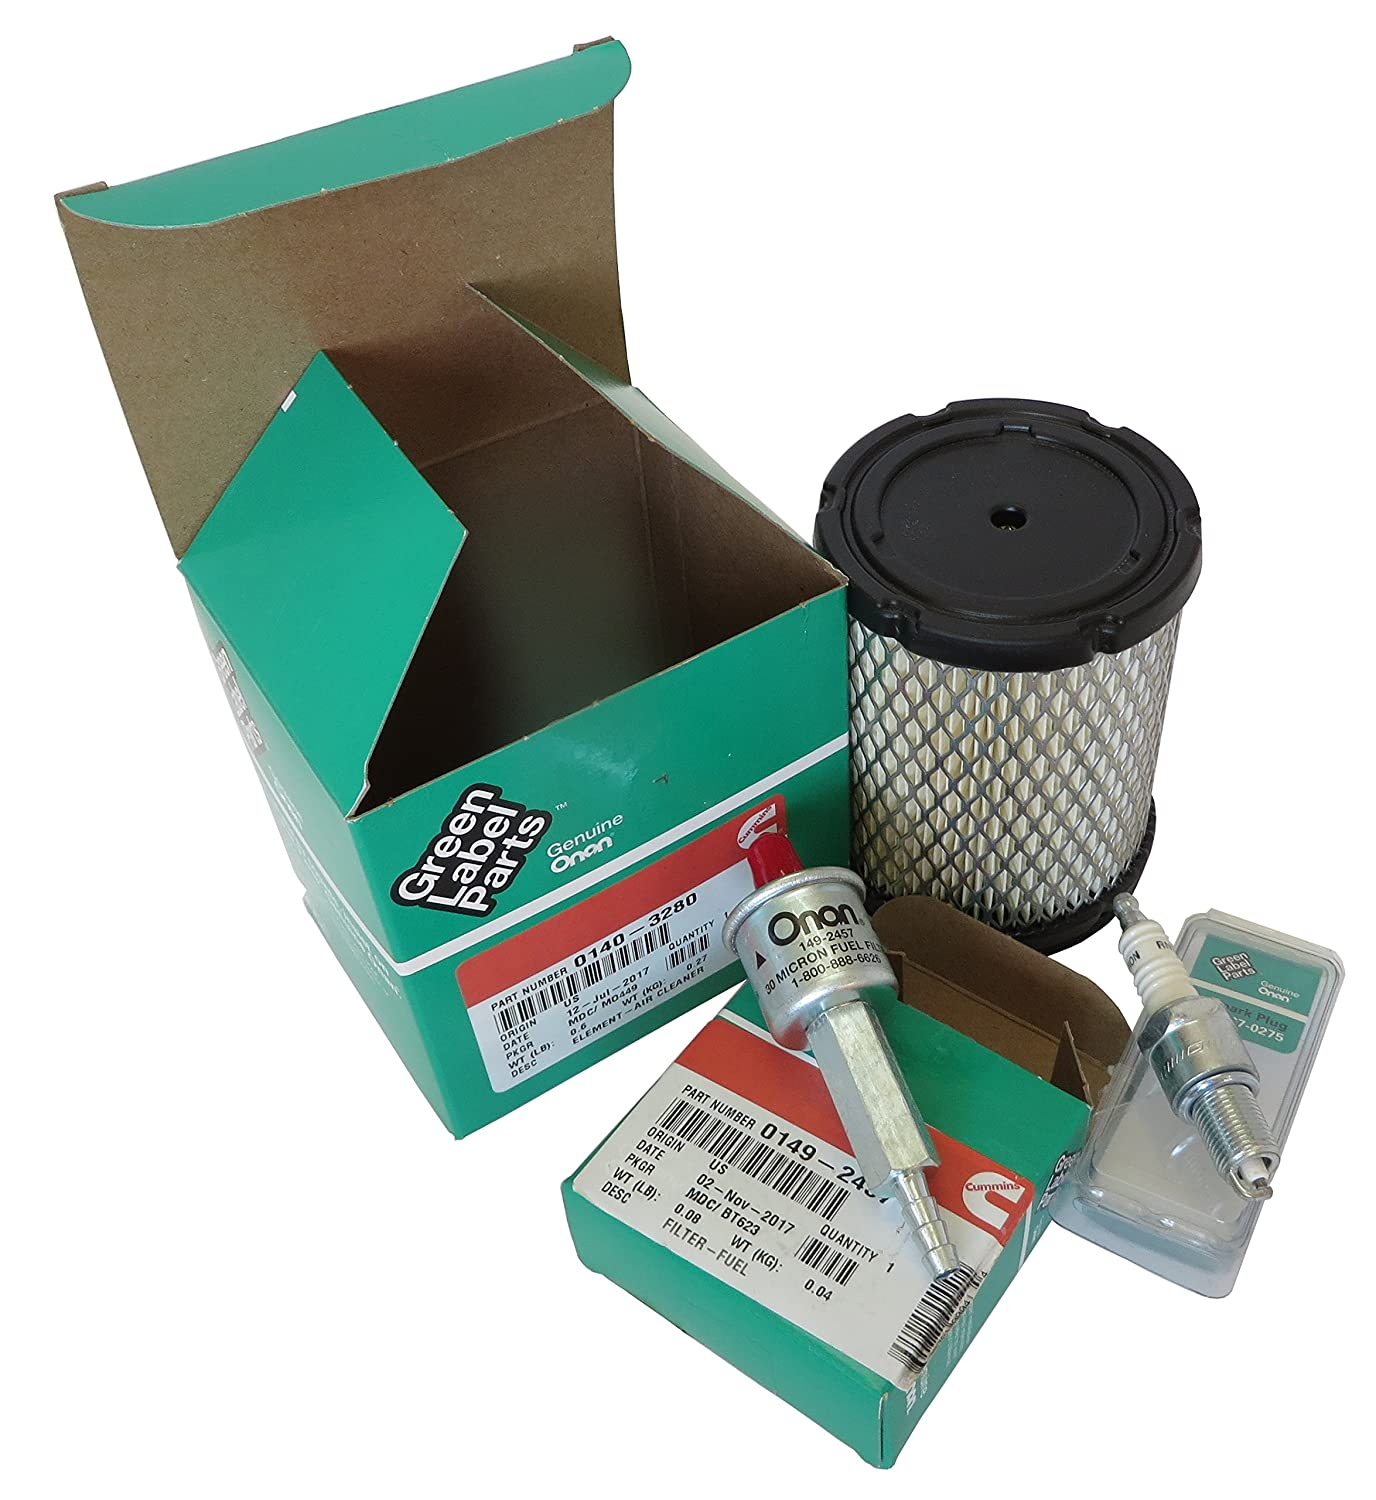 Tune Up Kit For Onan Rv Generator Model Ky 4000 Spec A P Non Evap Fuel Filter Models Parts Specialists